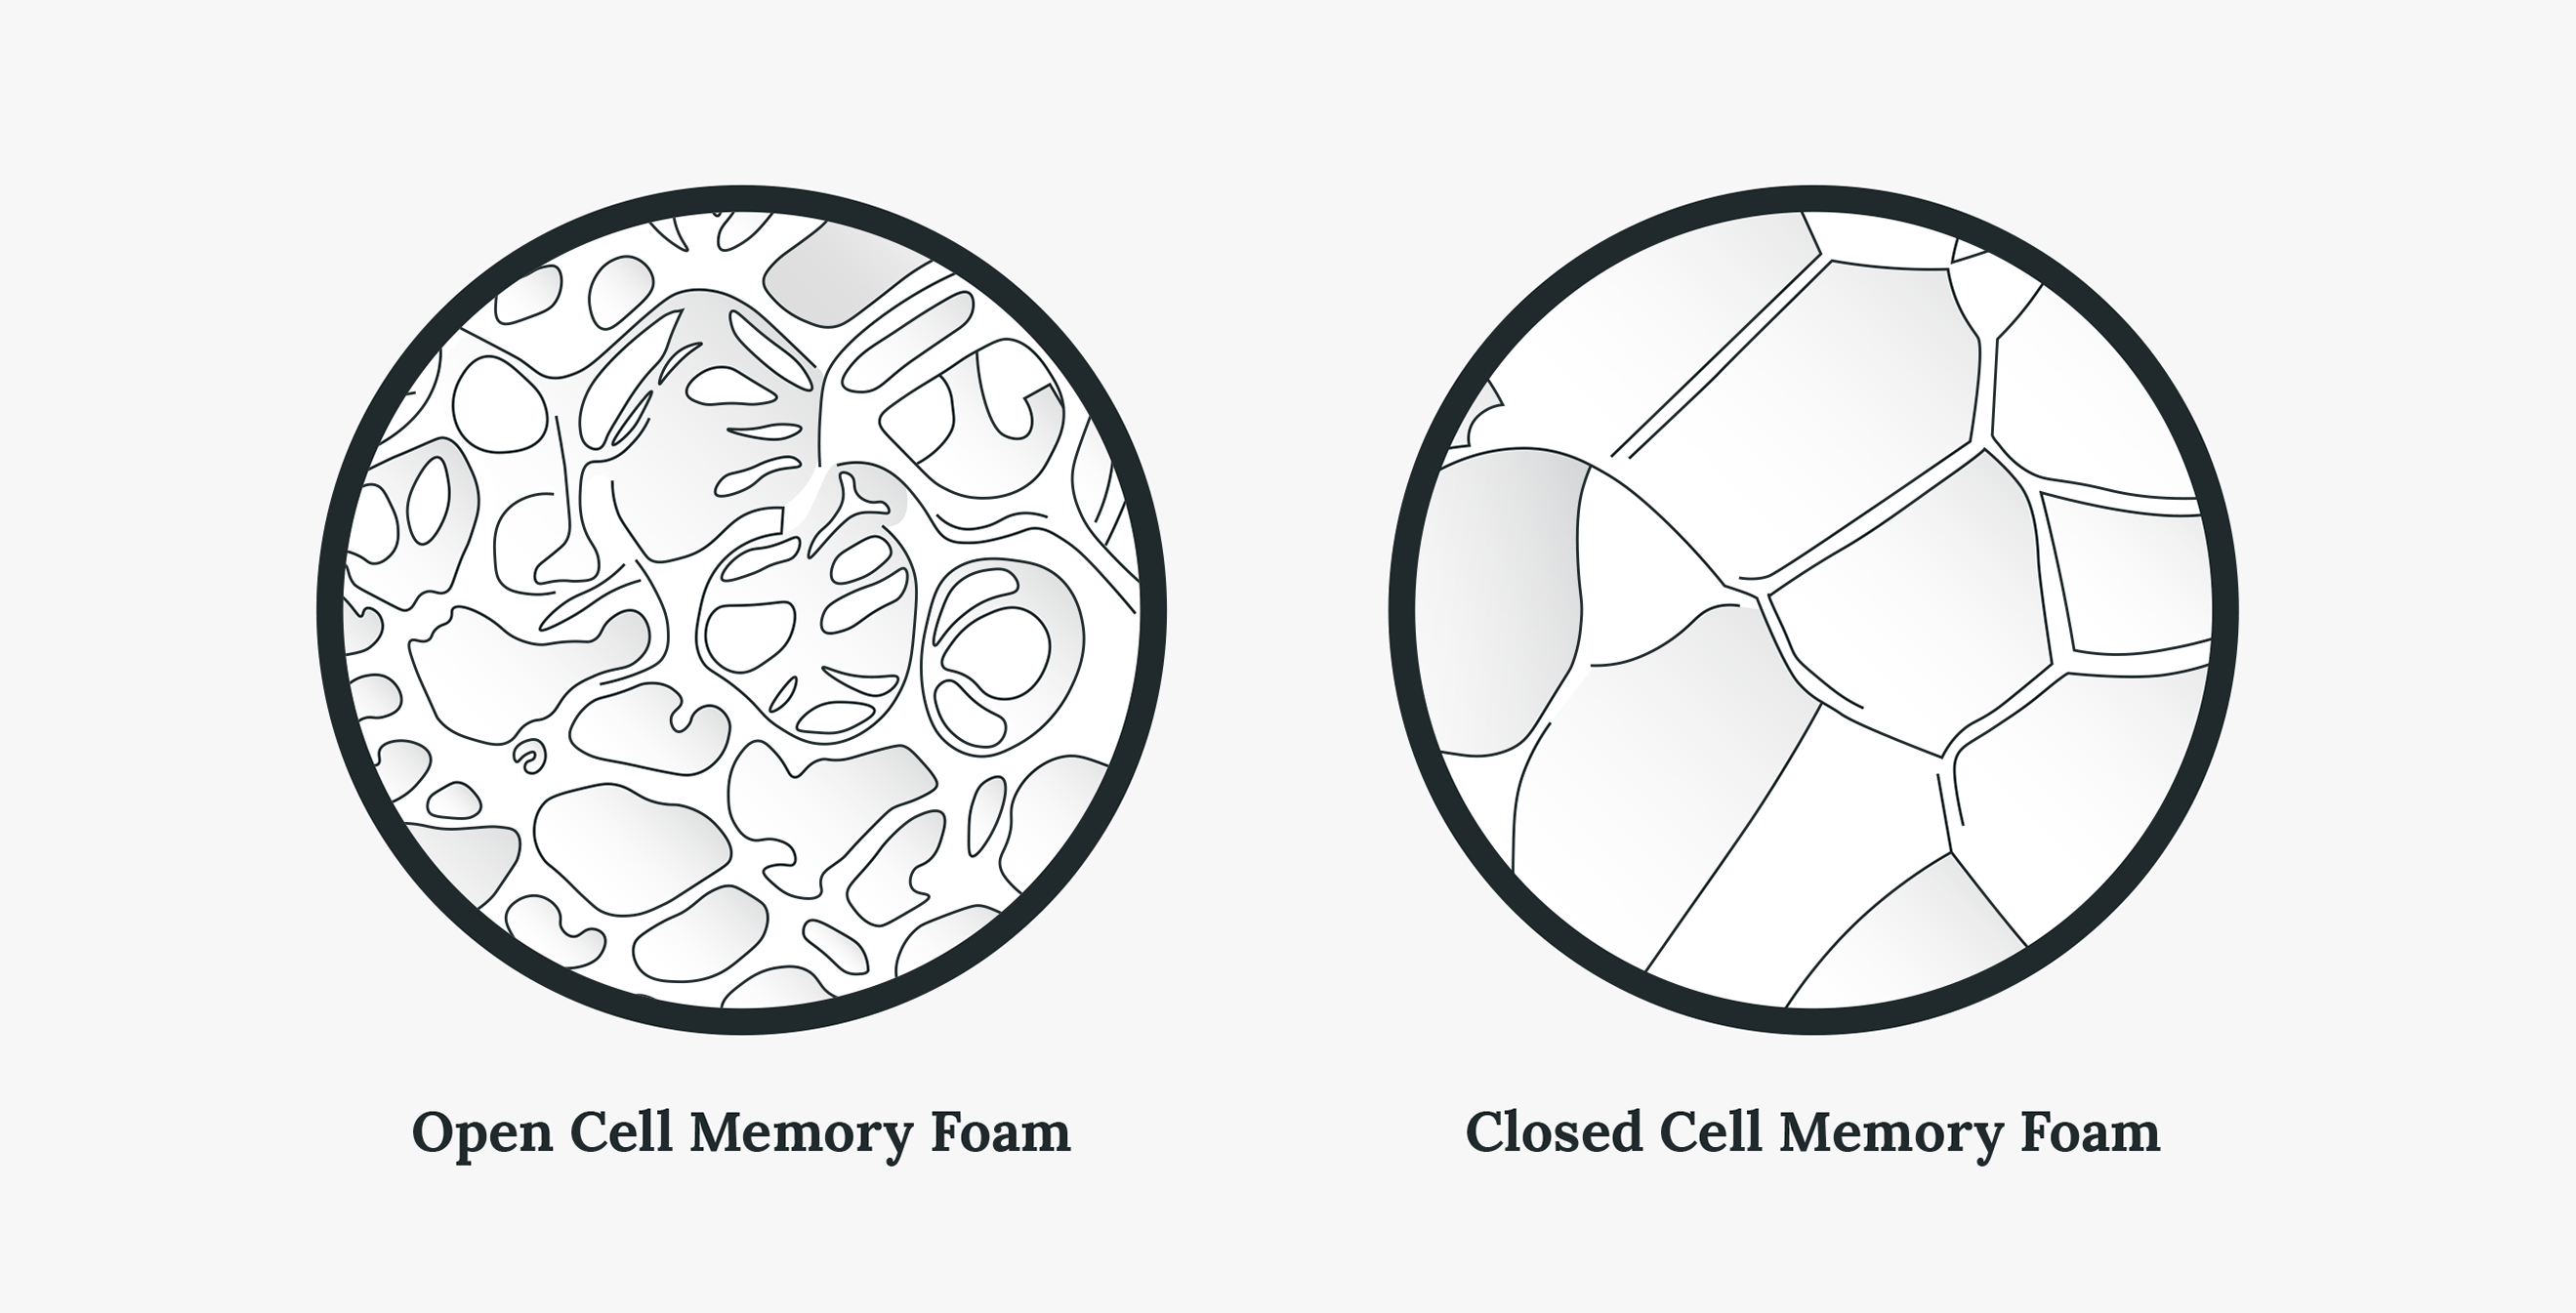 open-cell memory foam vs. closed-cell memory foam